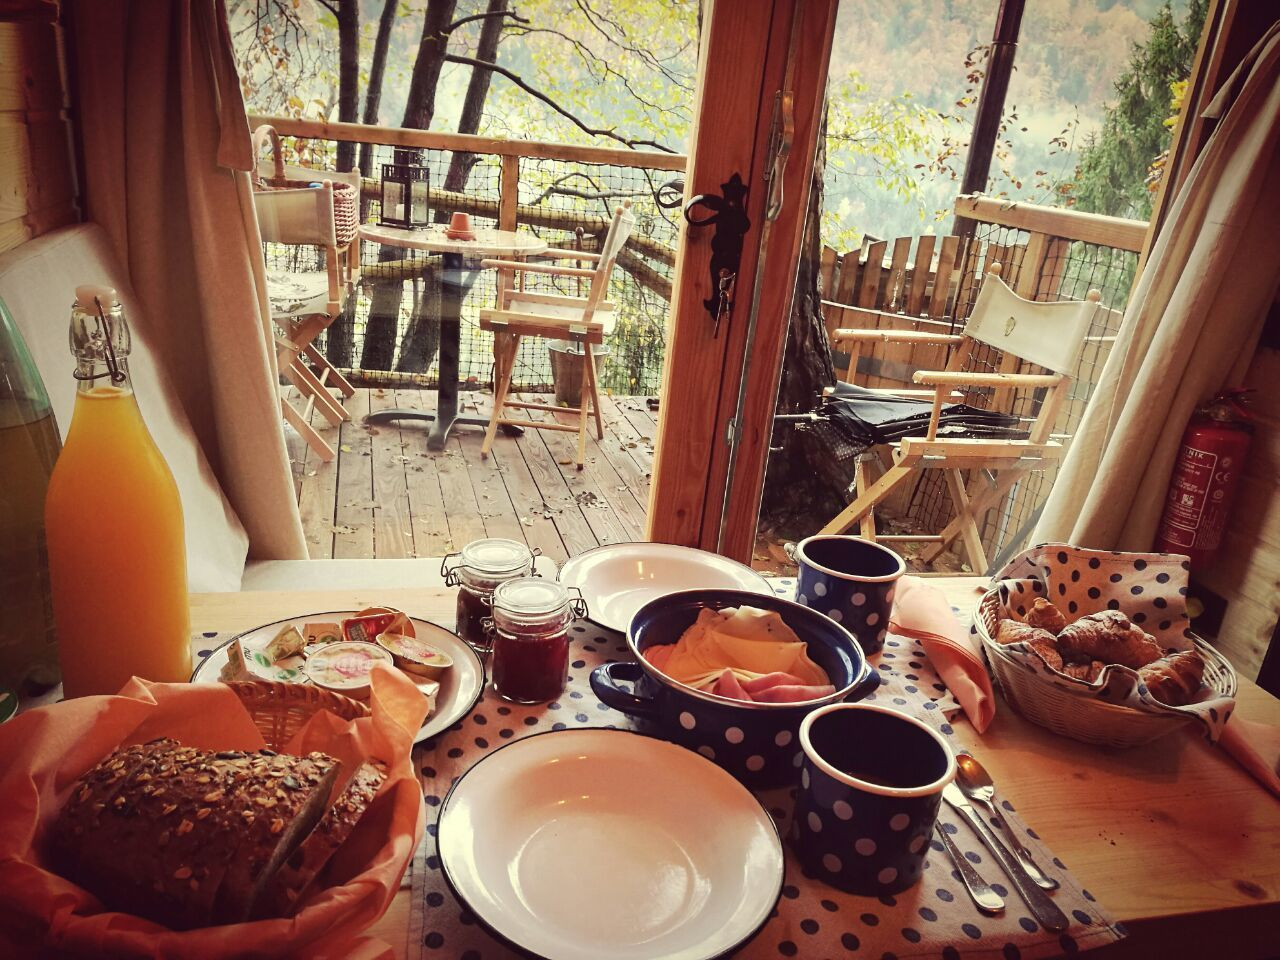 food and drink, table, plate, indoors, drinking glass, drink, window, food, day, refreshment, no people, breakfast, freshness, ready-to-eat